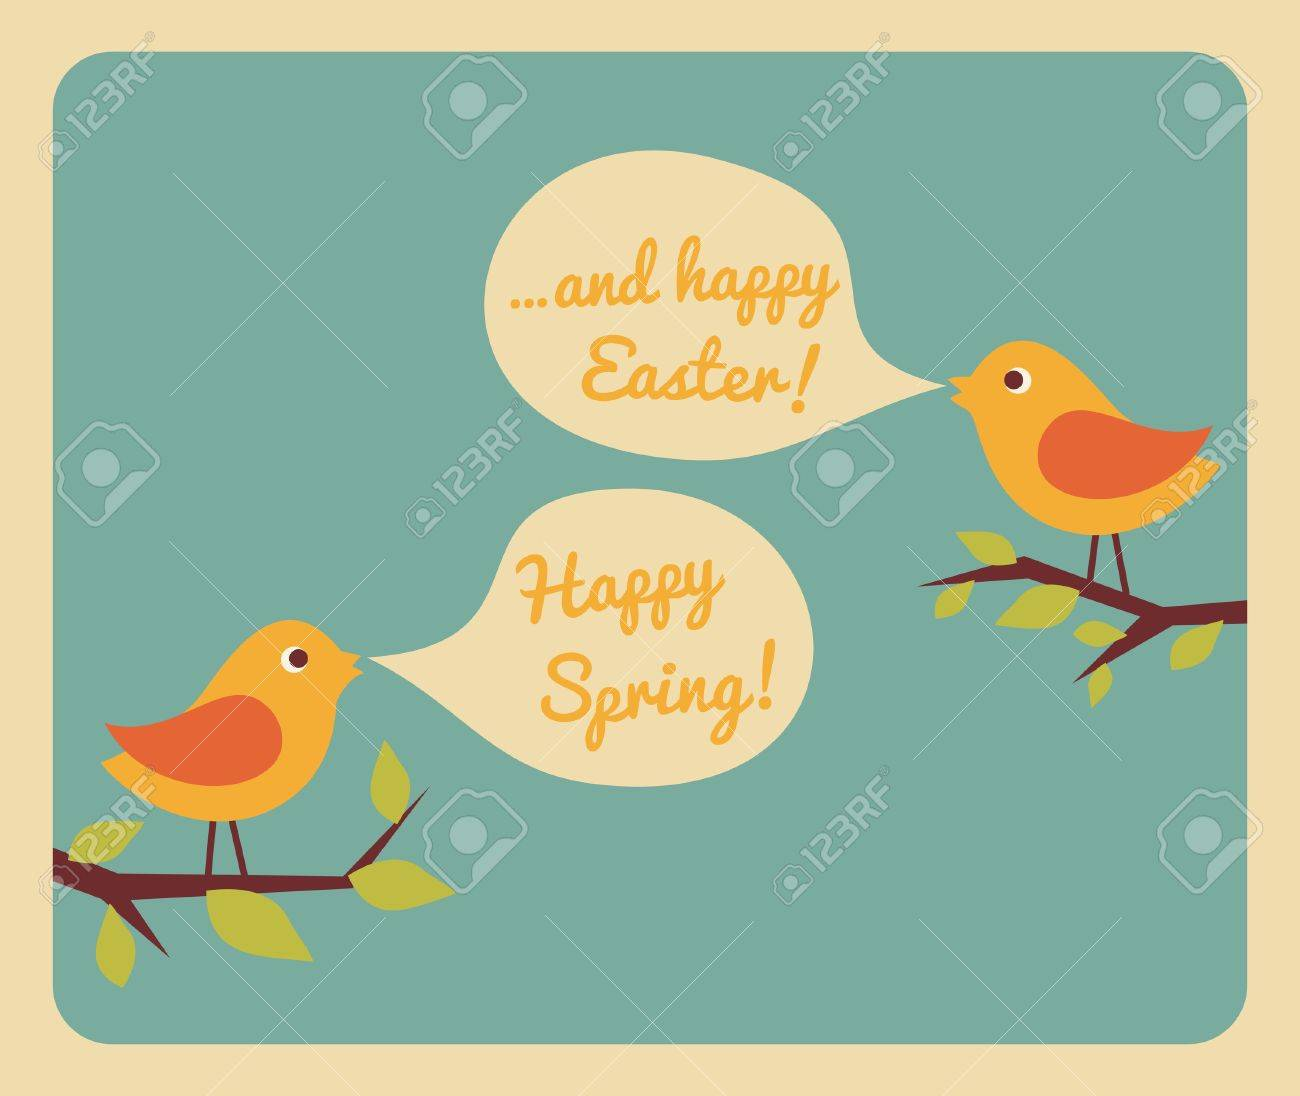 Retro style design for Easter greeting card. Stock Vector - 17688939